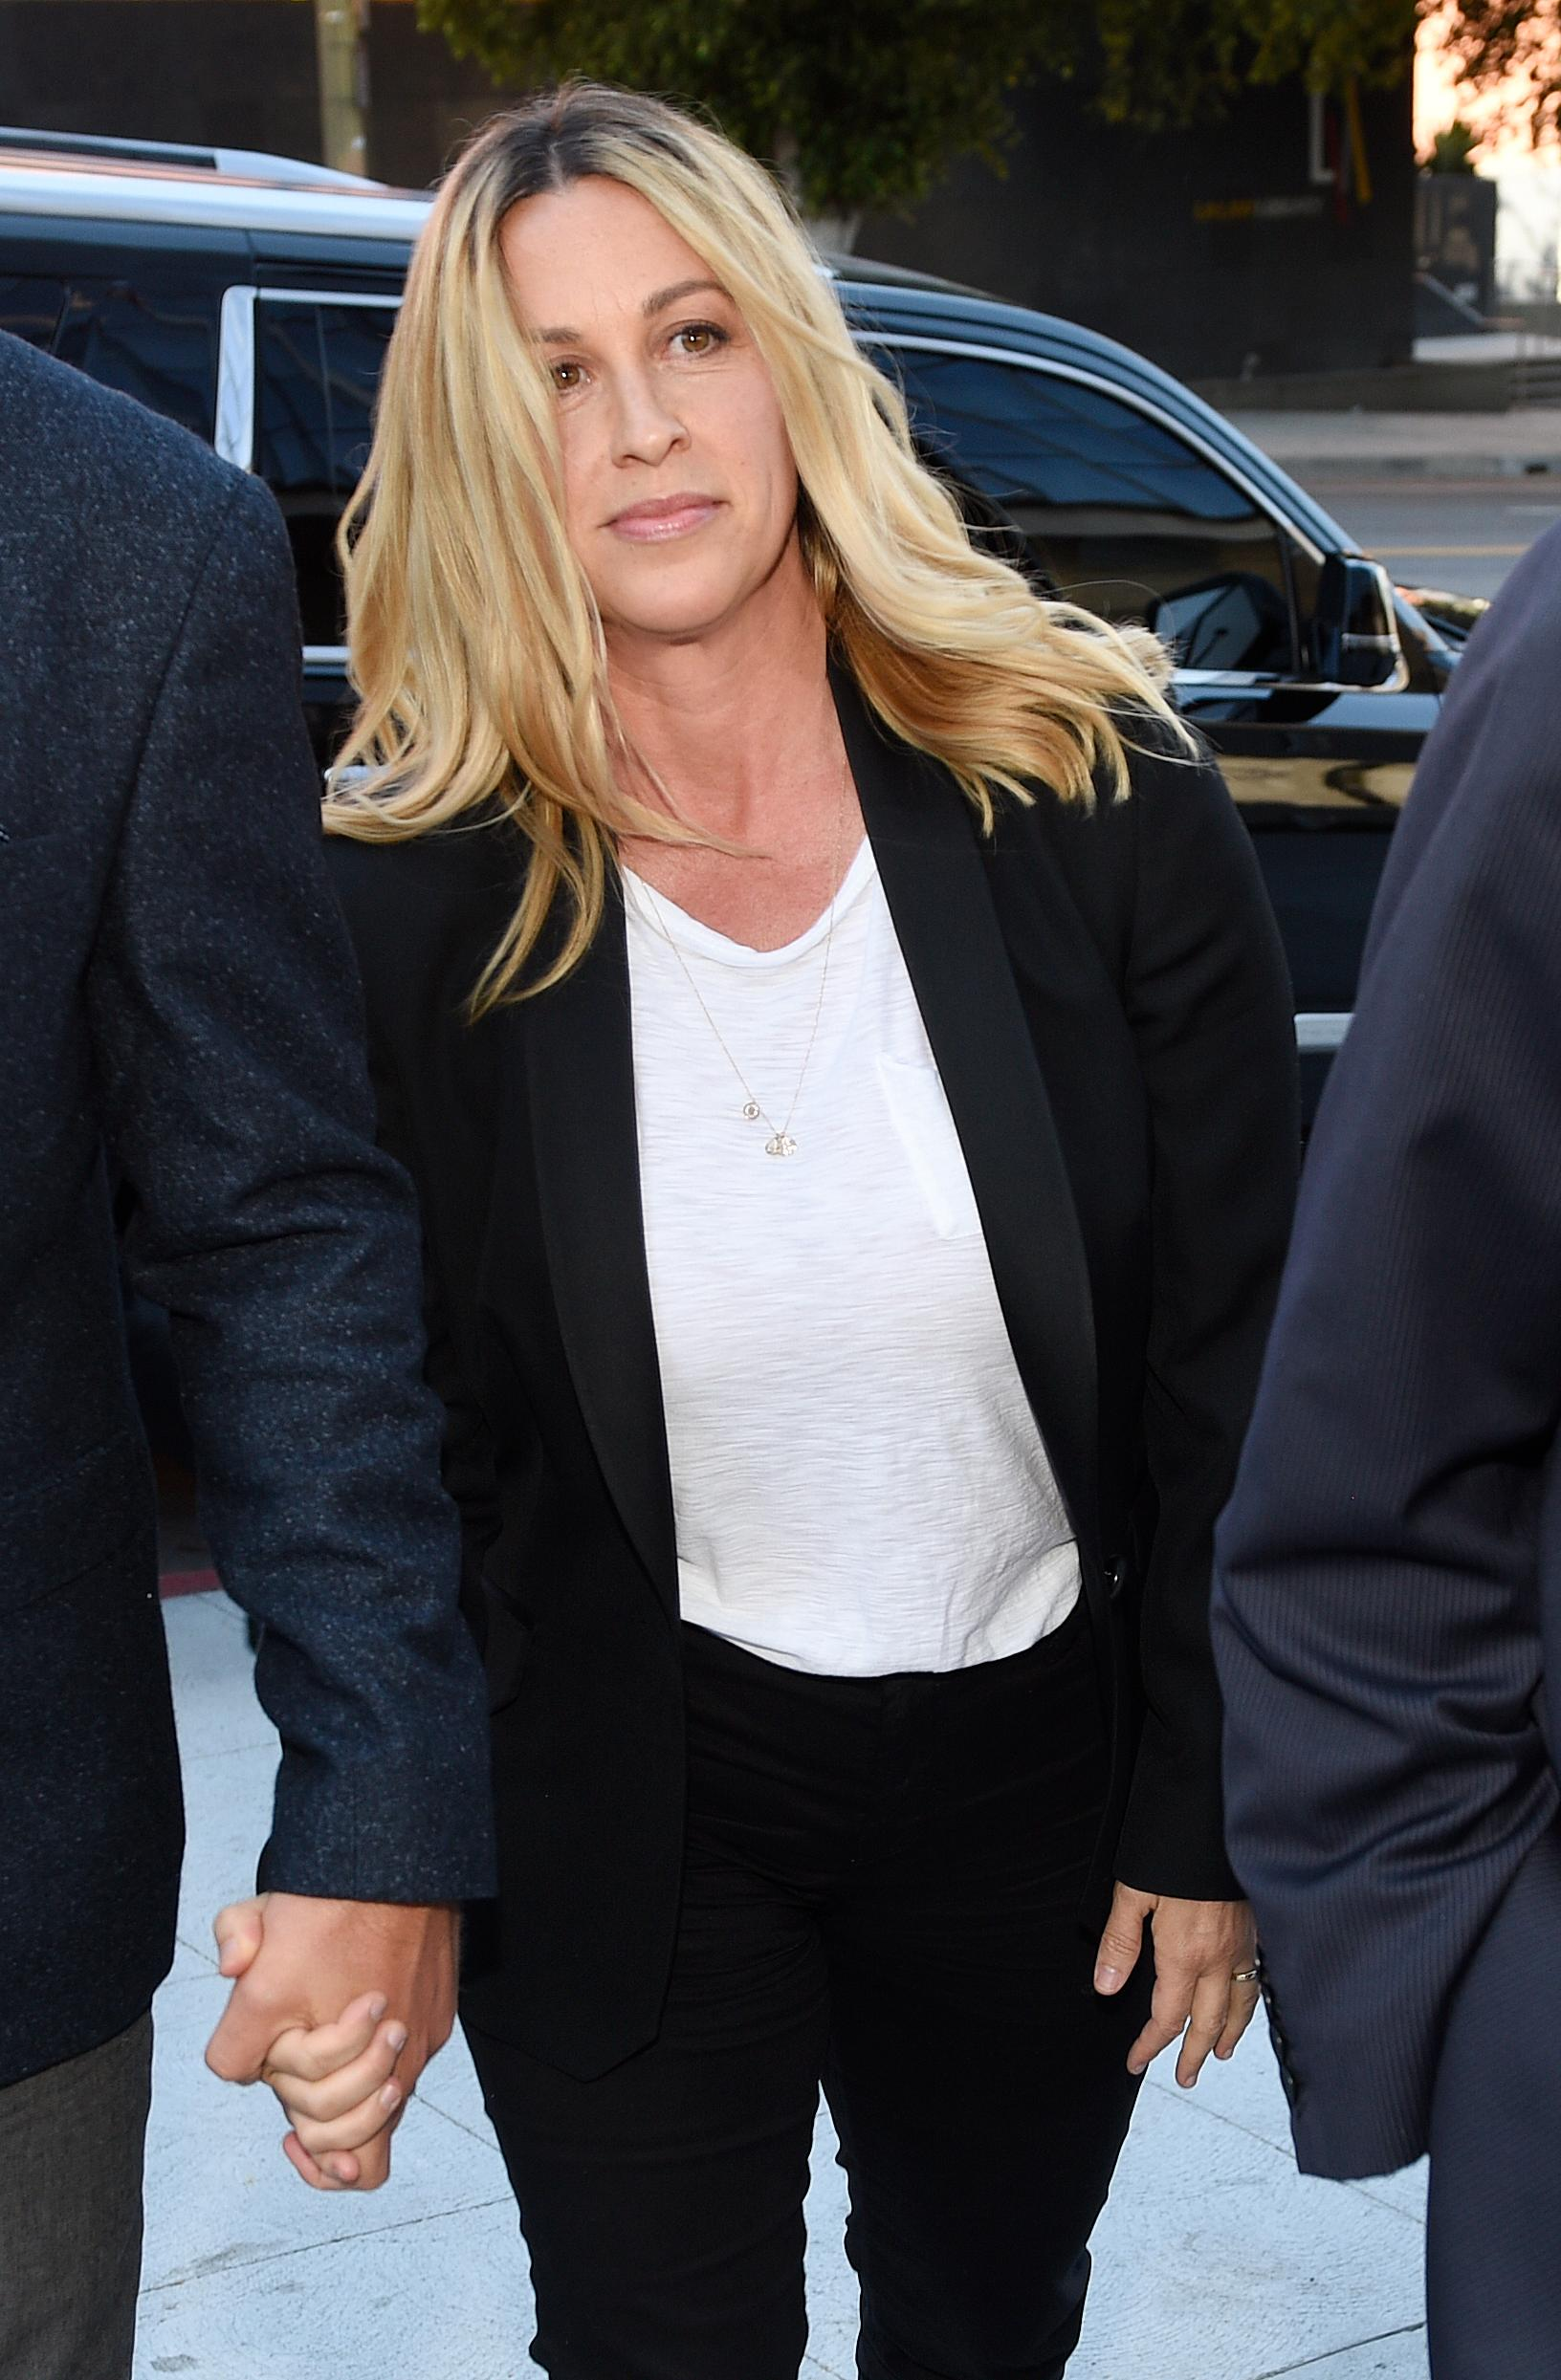 Singer Alanis Morissette arrives at U.S. federal court for the sentencing in the embezzlement case of her former manager Jonathan Todd Schwartz, Wednesday, May 3, 2017, in Los Angeles. Schwartz pleaded guilty earlier this year after admitting he embezzled more than $7 million from the singer and other celebrities. (AP Photo/Chris Pizzello)